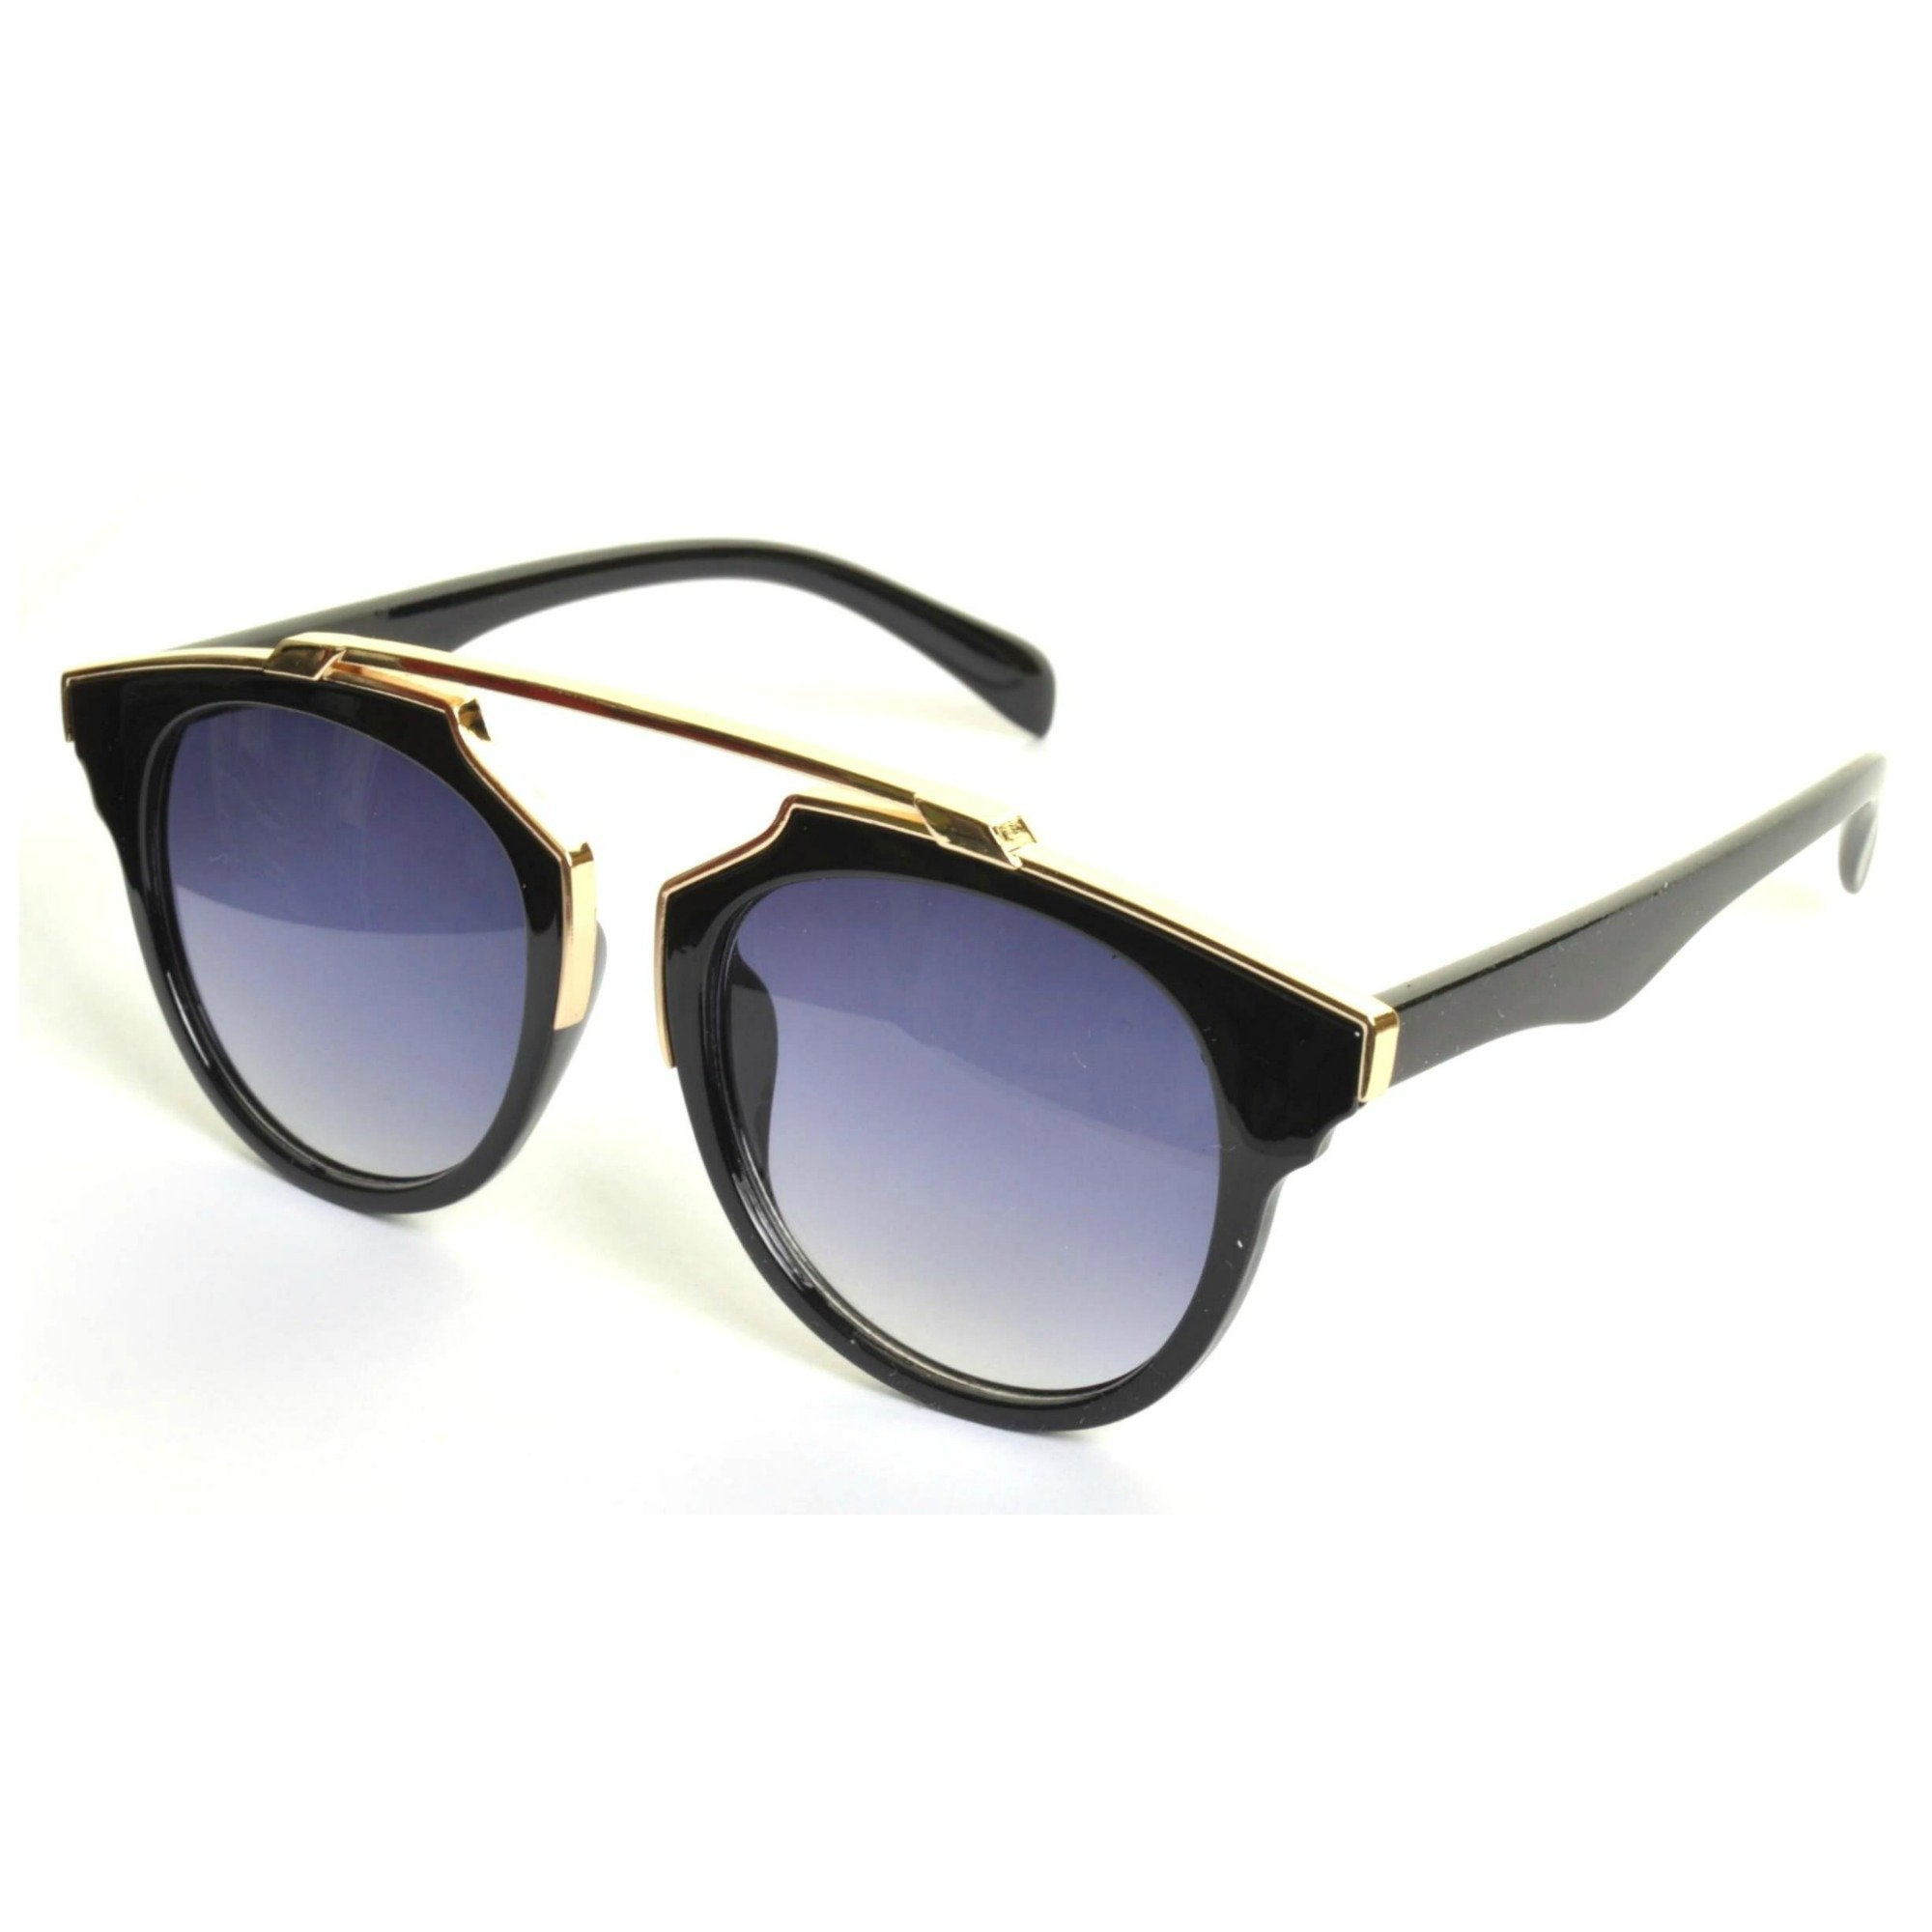 BAILEY Metal Top Brow Bar Sunglasses - Minimum Mouse